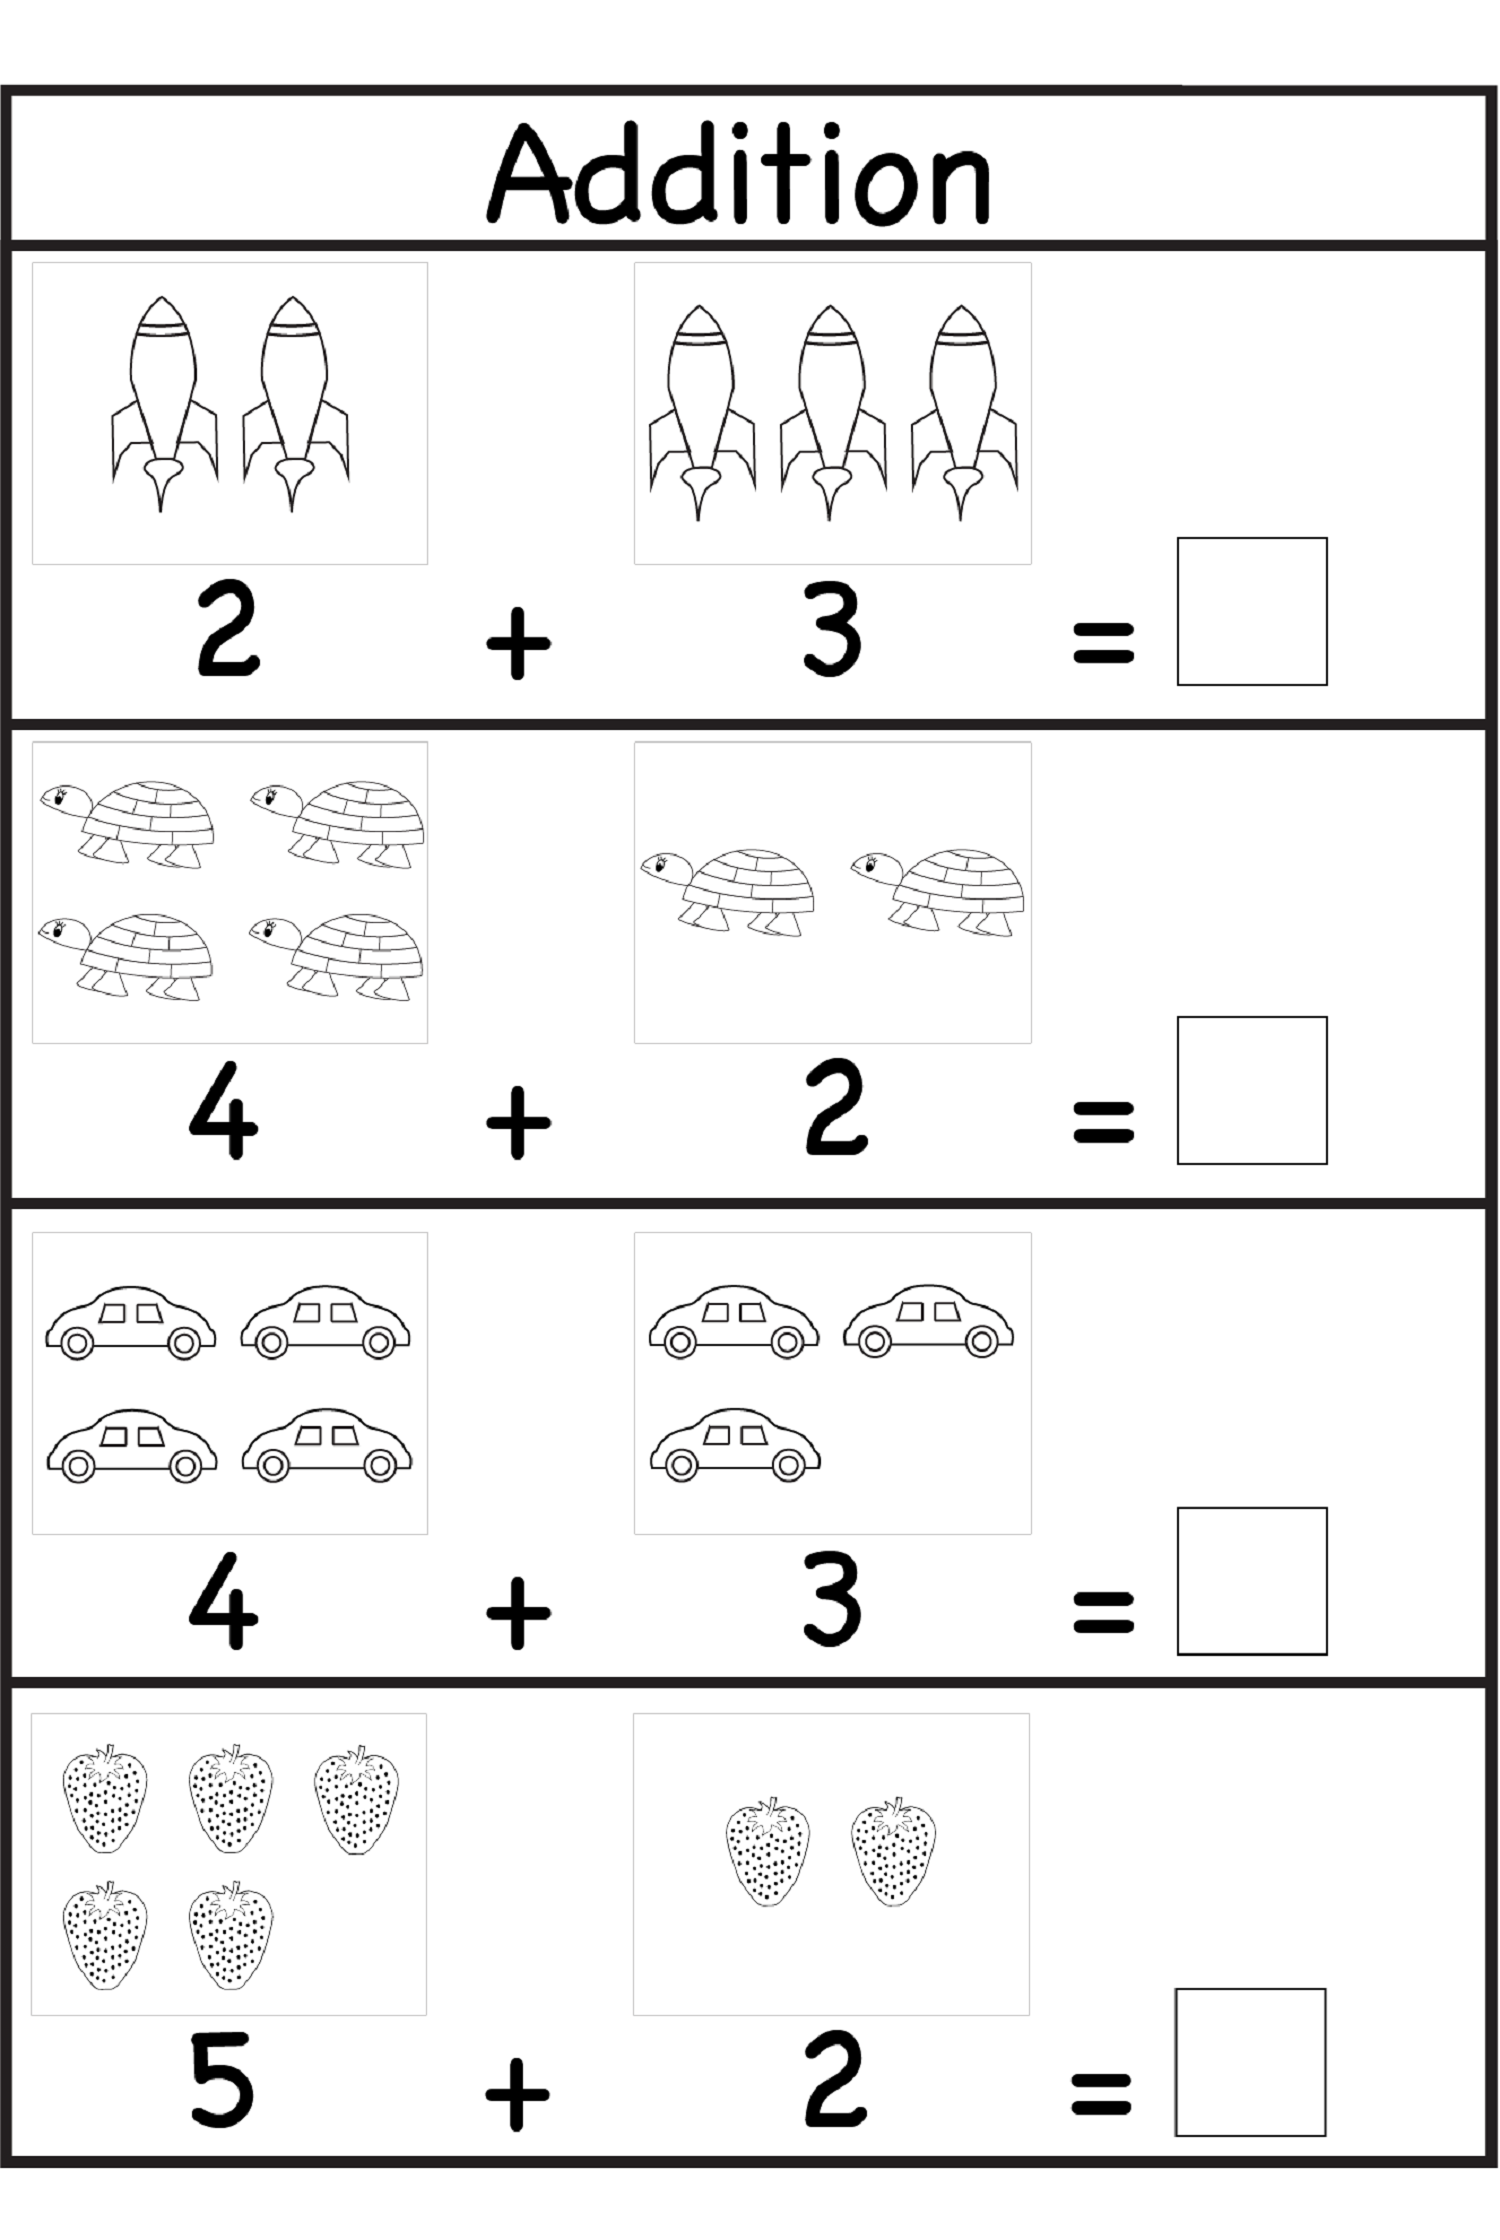 Addition For Worksheets For Grade 1 Is Helpful Educative Media – Grade One Addition Worksheets